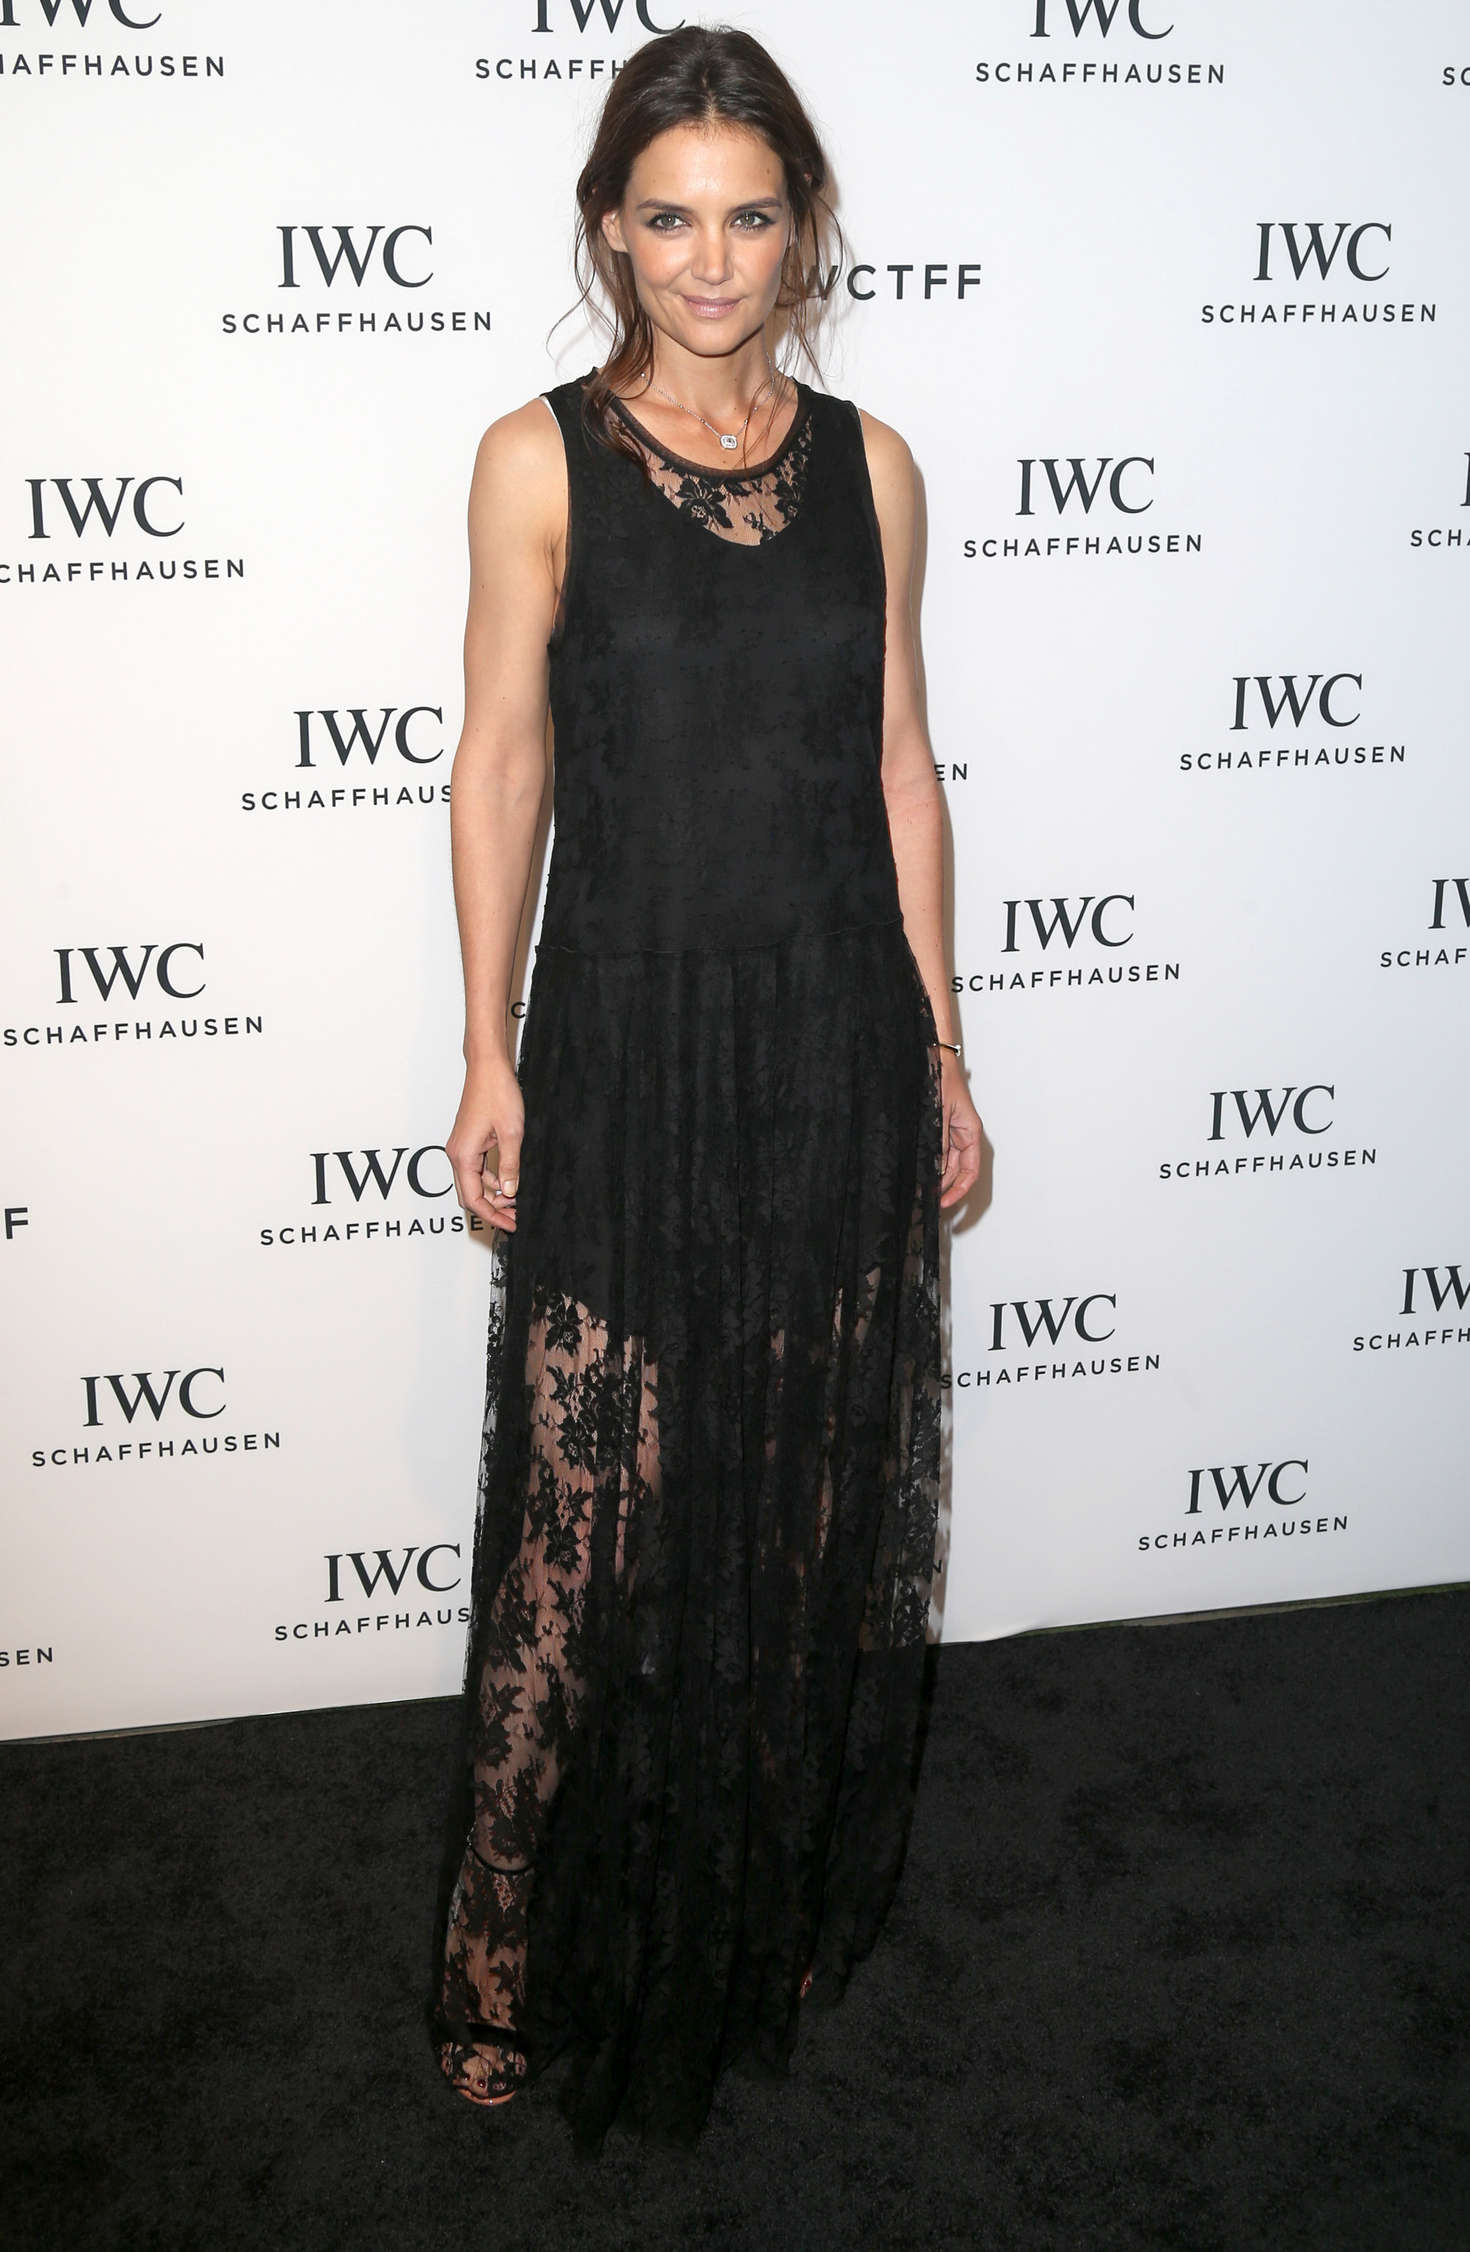 Katie Holmes 2016 : Katie Holmes: For The Love Of Cinema Dinner at Tribeca Film Fest 2016 -03